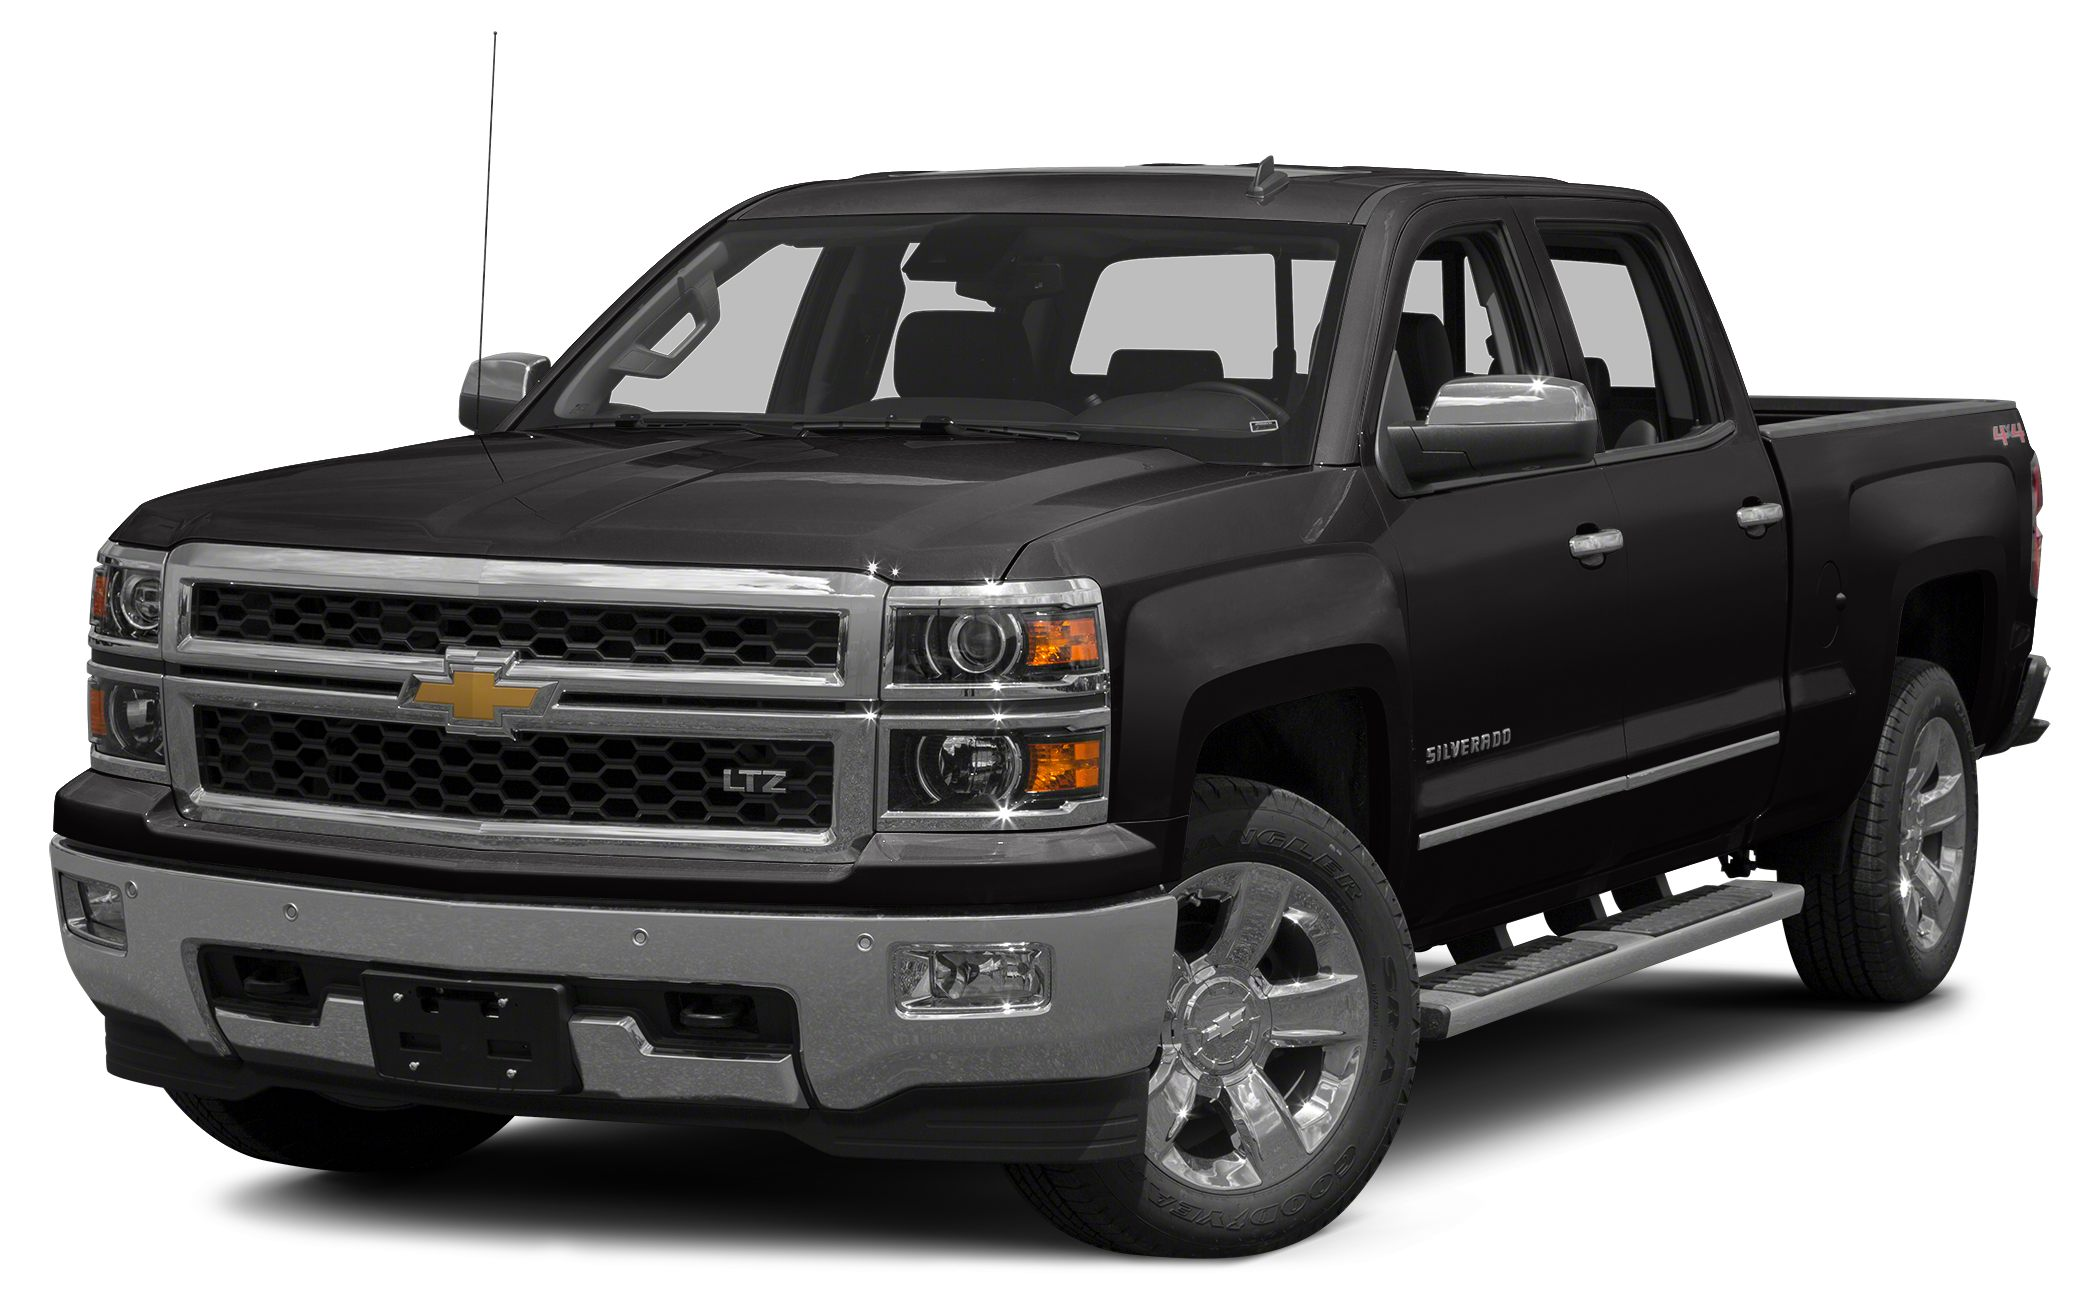 2014 Chevrolet Silverado 1500 LT Great truck to check out here Low miles great condition 53 v8